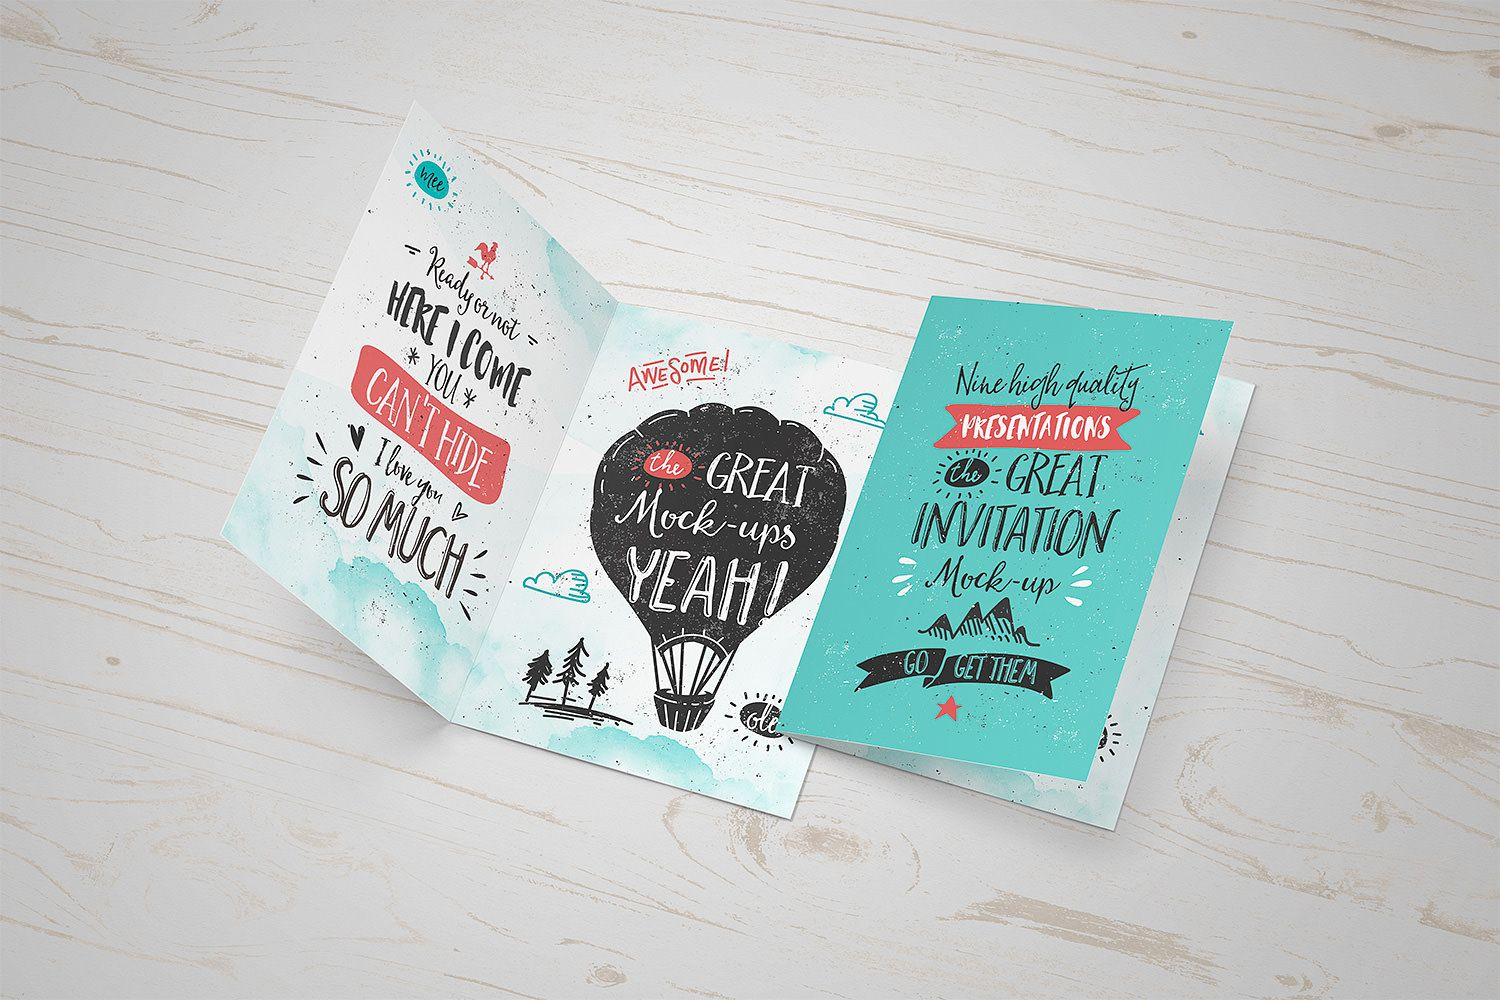 Free Invitation or Greeting Card Mockup PSD | Graphic Design | Pinterest